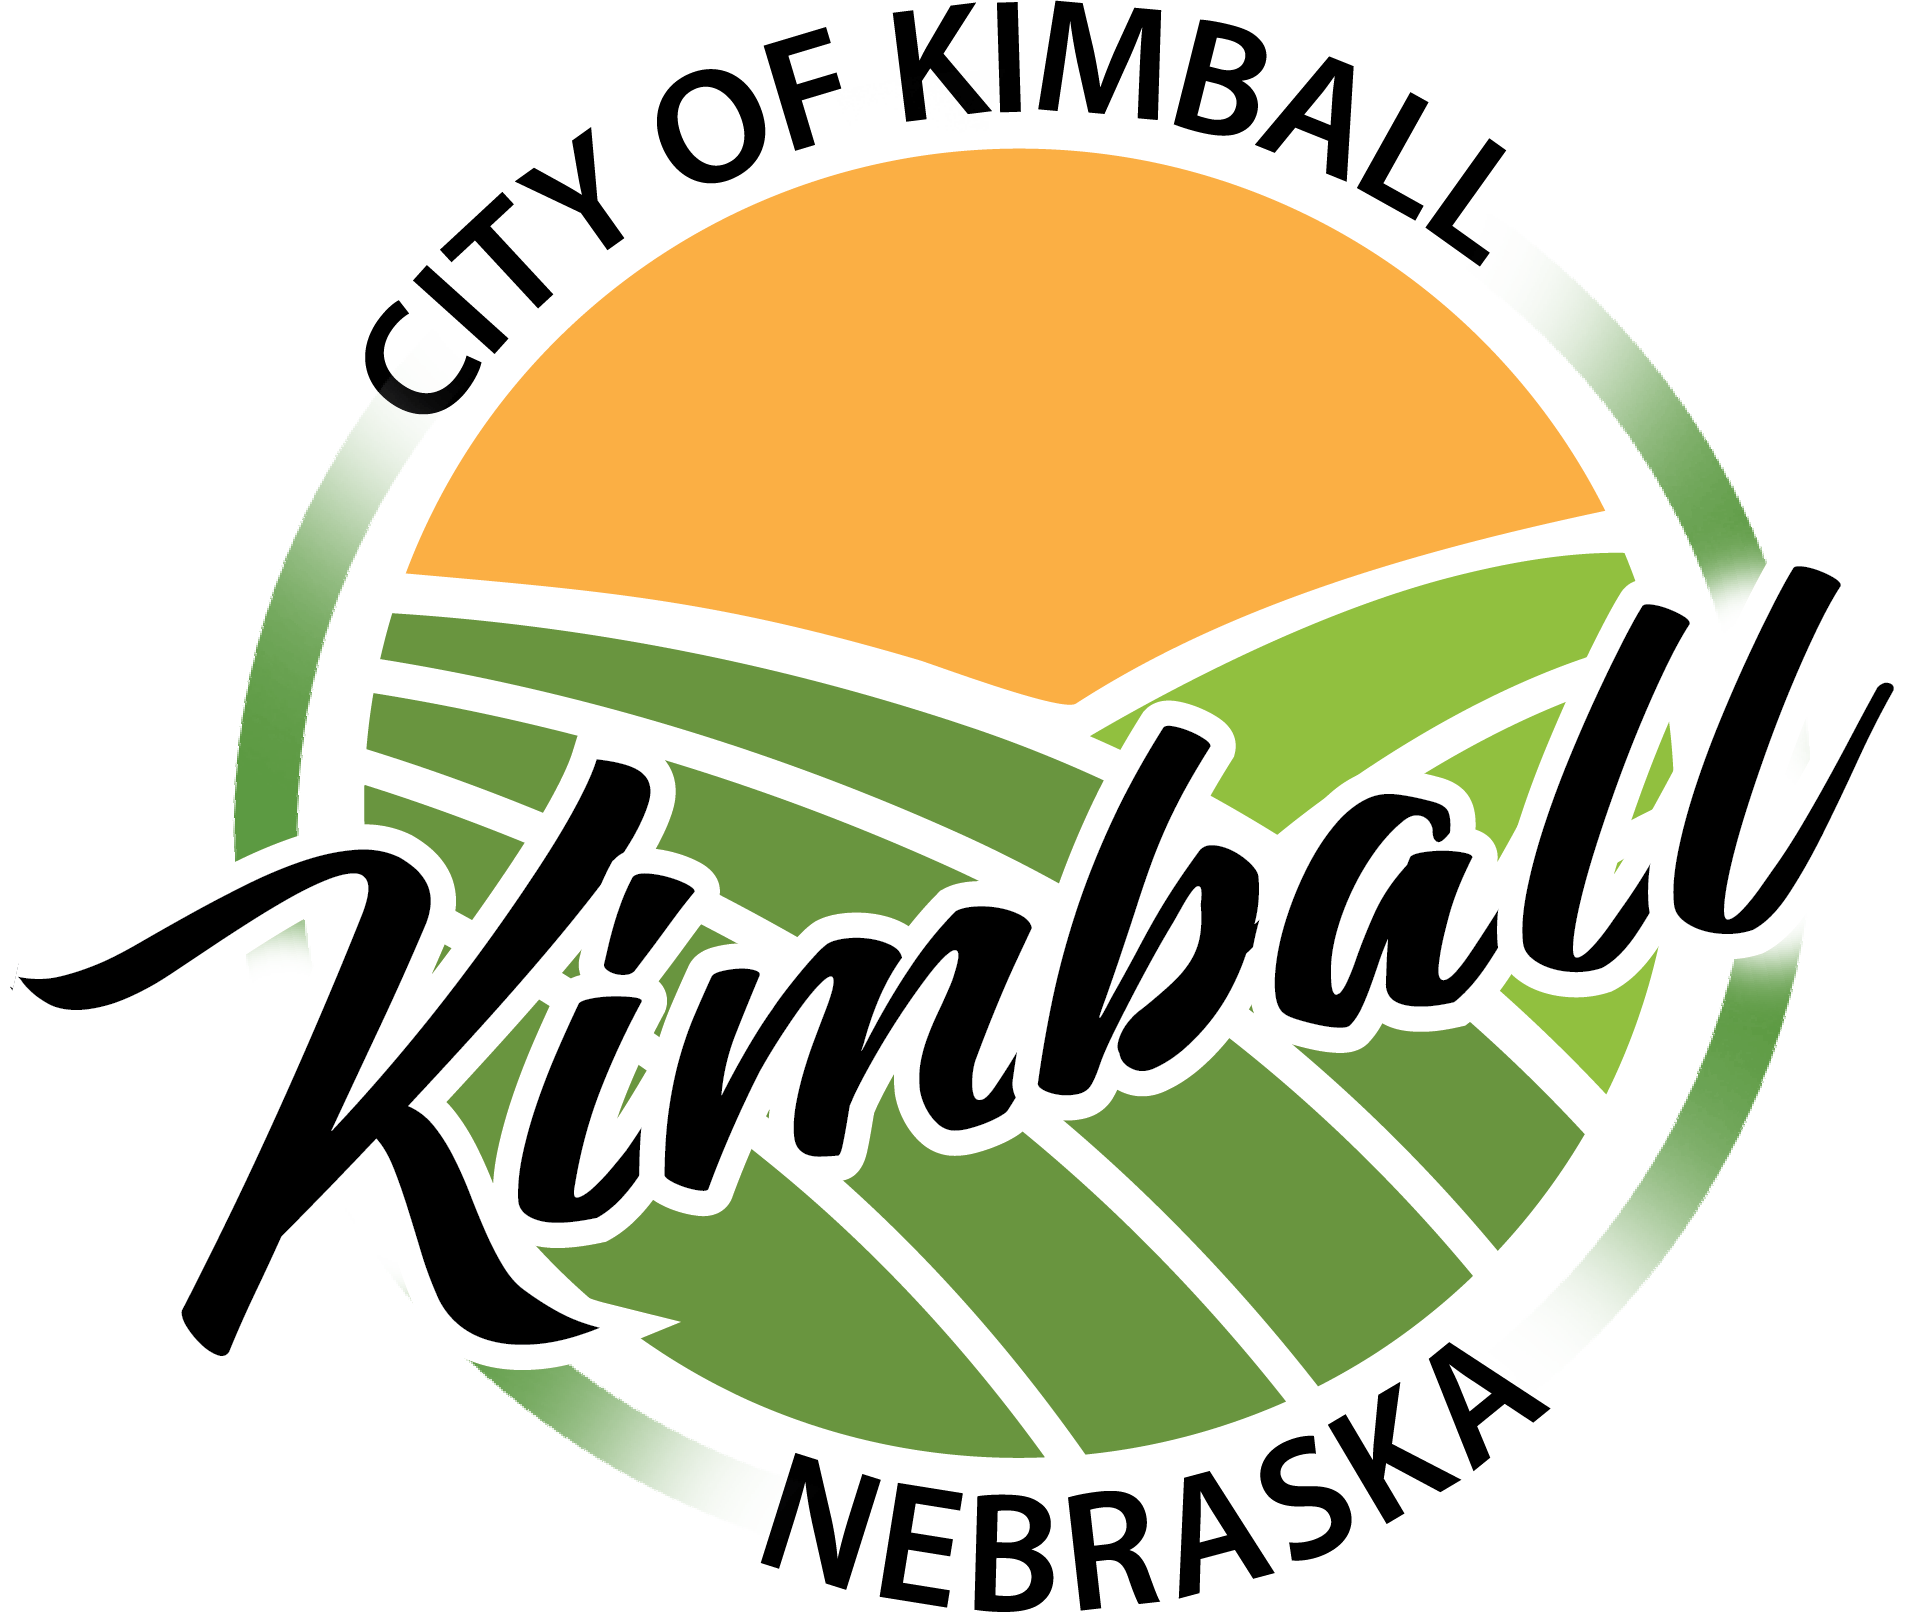 City of Kimball, NE